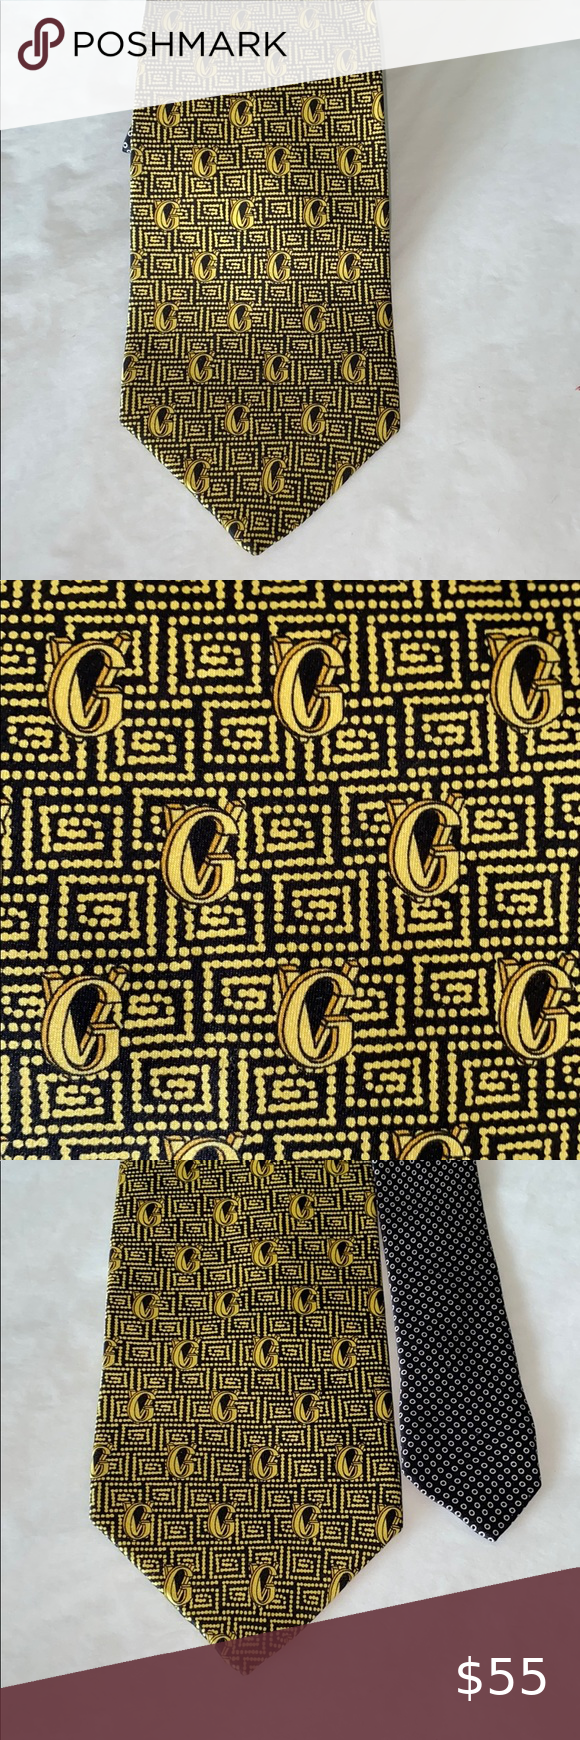 Gianni Versace Black Gold Logo Silk Tie Fabulous Gold And Black Tie Gv Logo 3 1 2 Wide 59 Long Made In Italy Versace Acc Silk Ties Gold Logo Gianni Versace